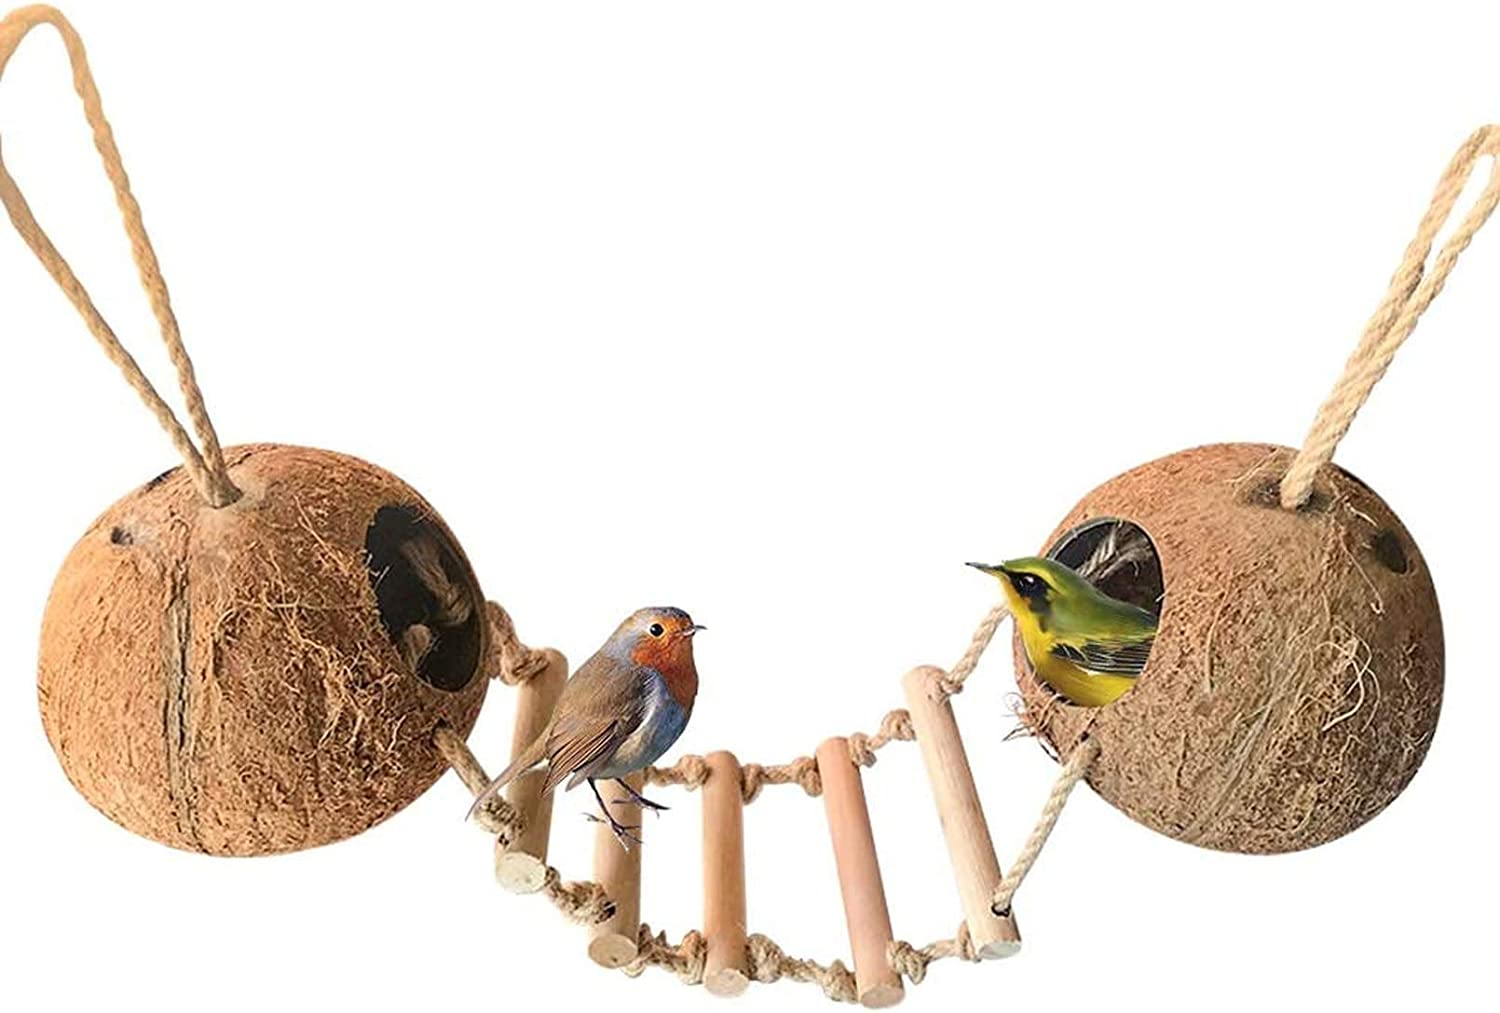 Bird Hides Coconut Nest with Wood Cage Han Hamster Animer and price revision Syrian Jacksonville Mall Ladder